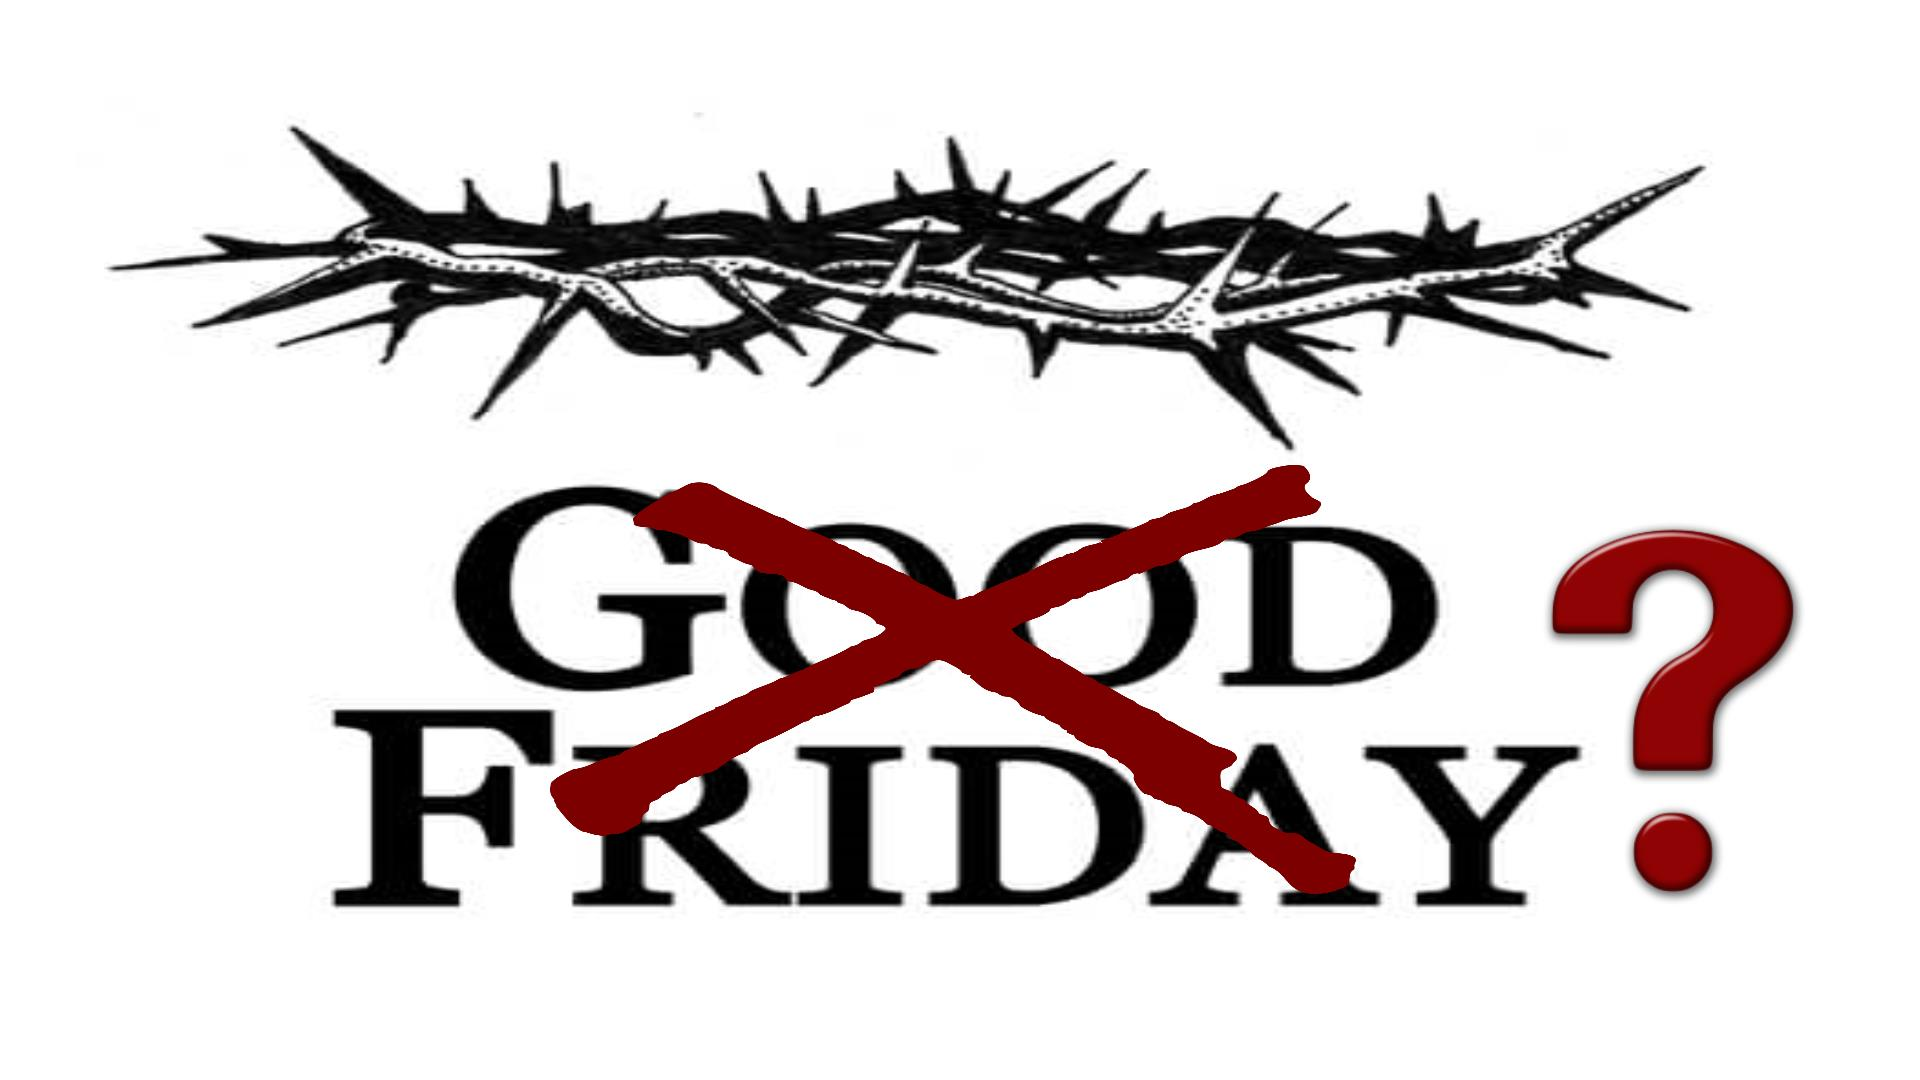 GOOD FRIDAY?